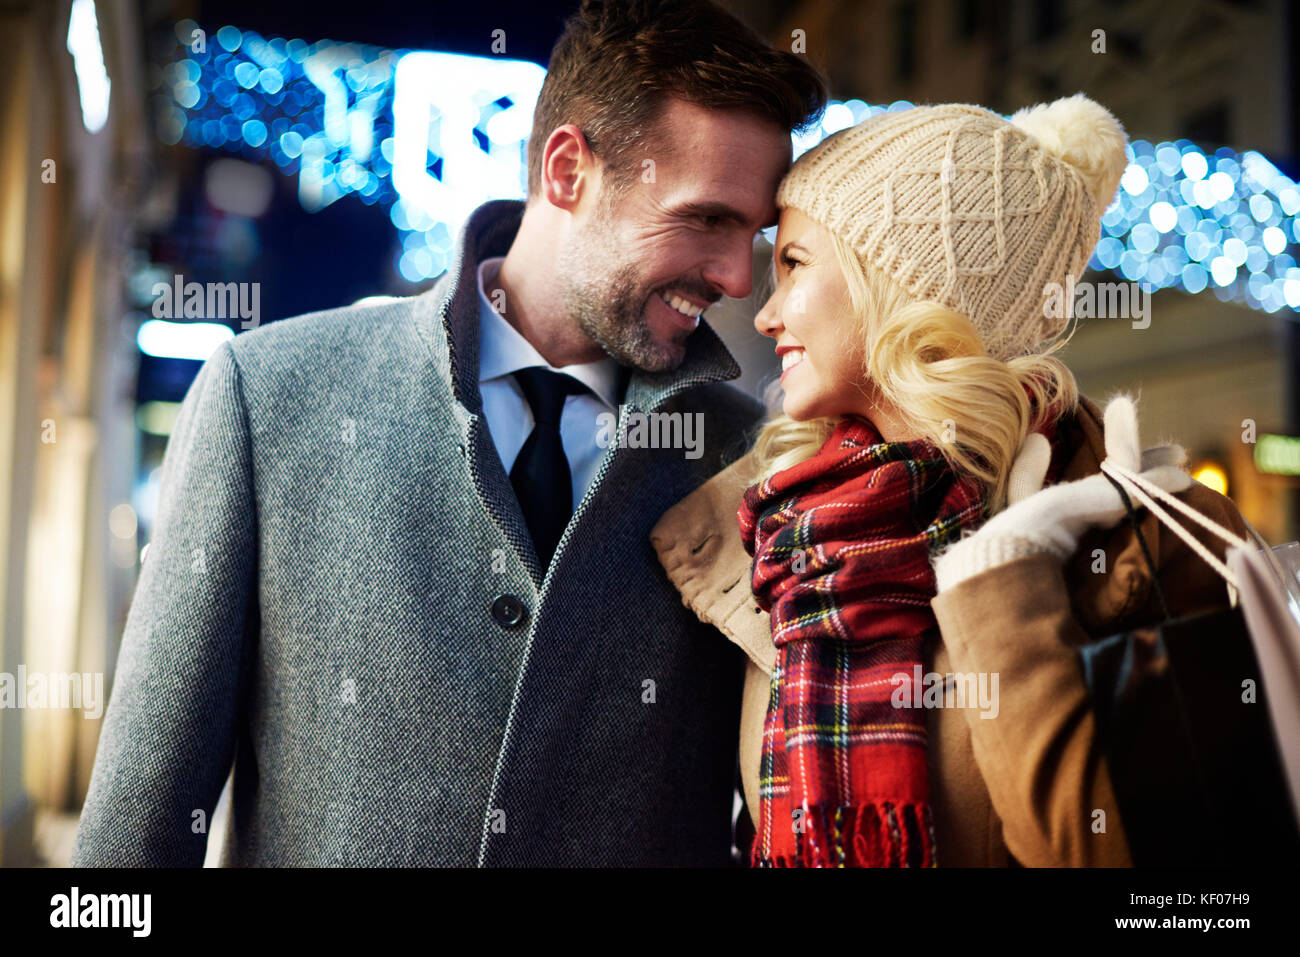 Enamored couple at night time in the town Stock Photo